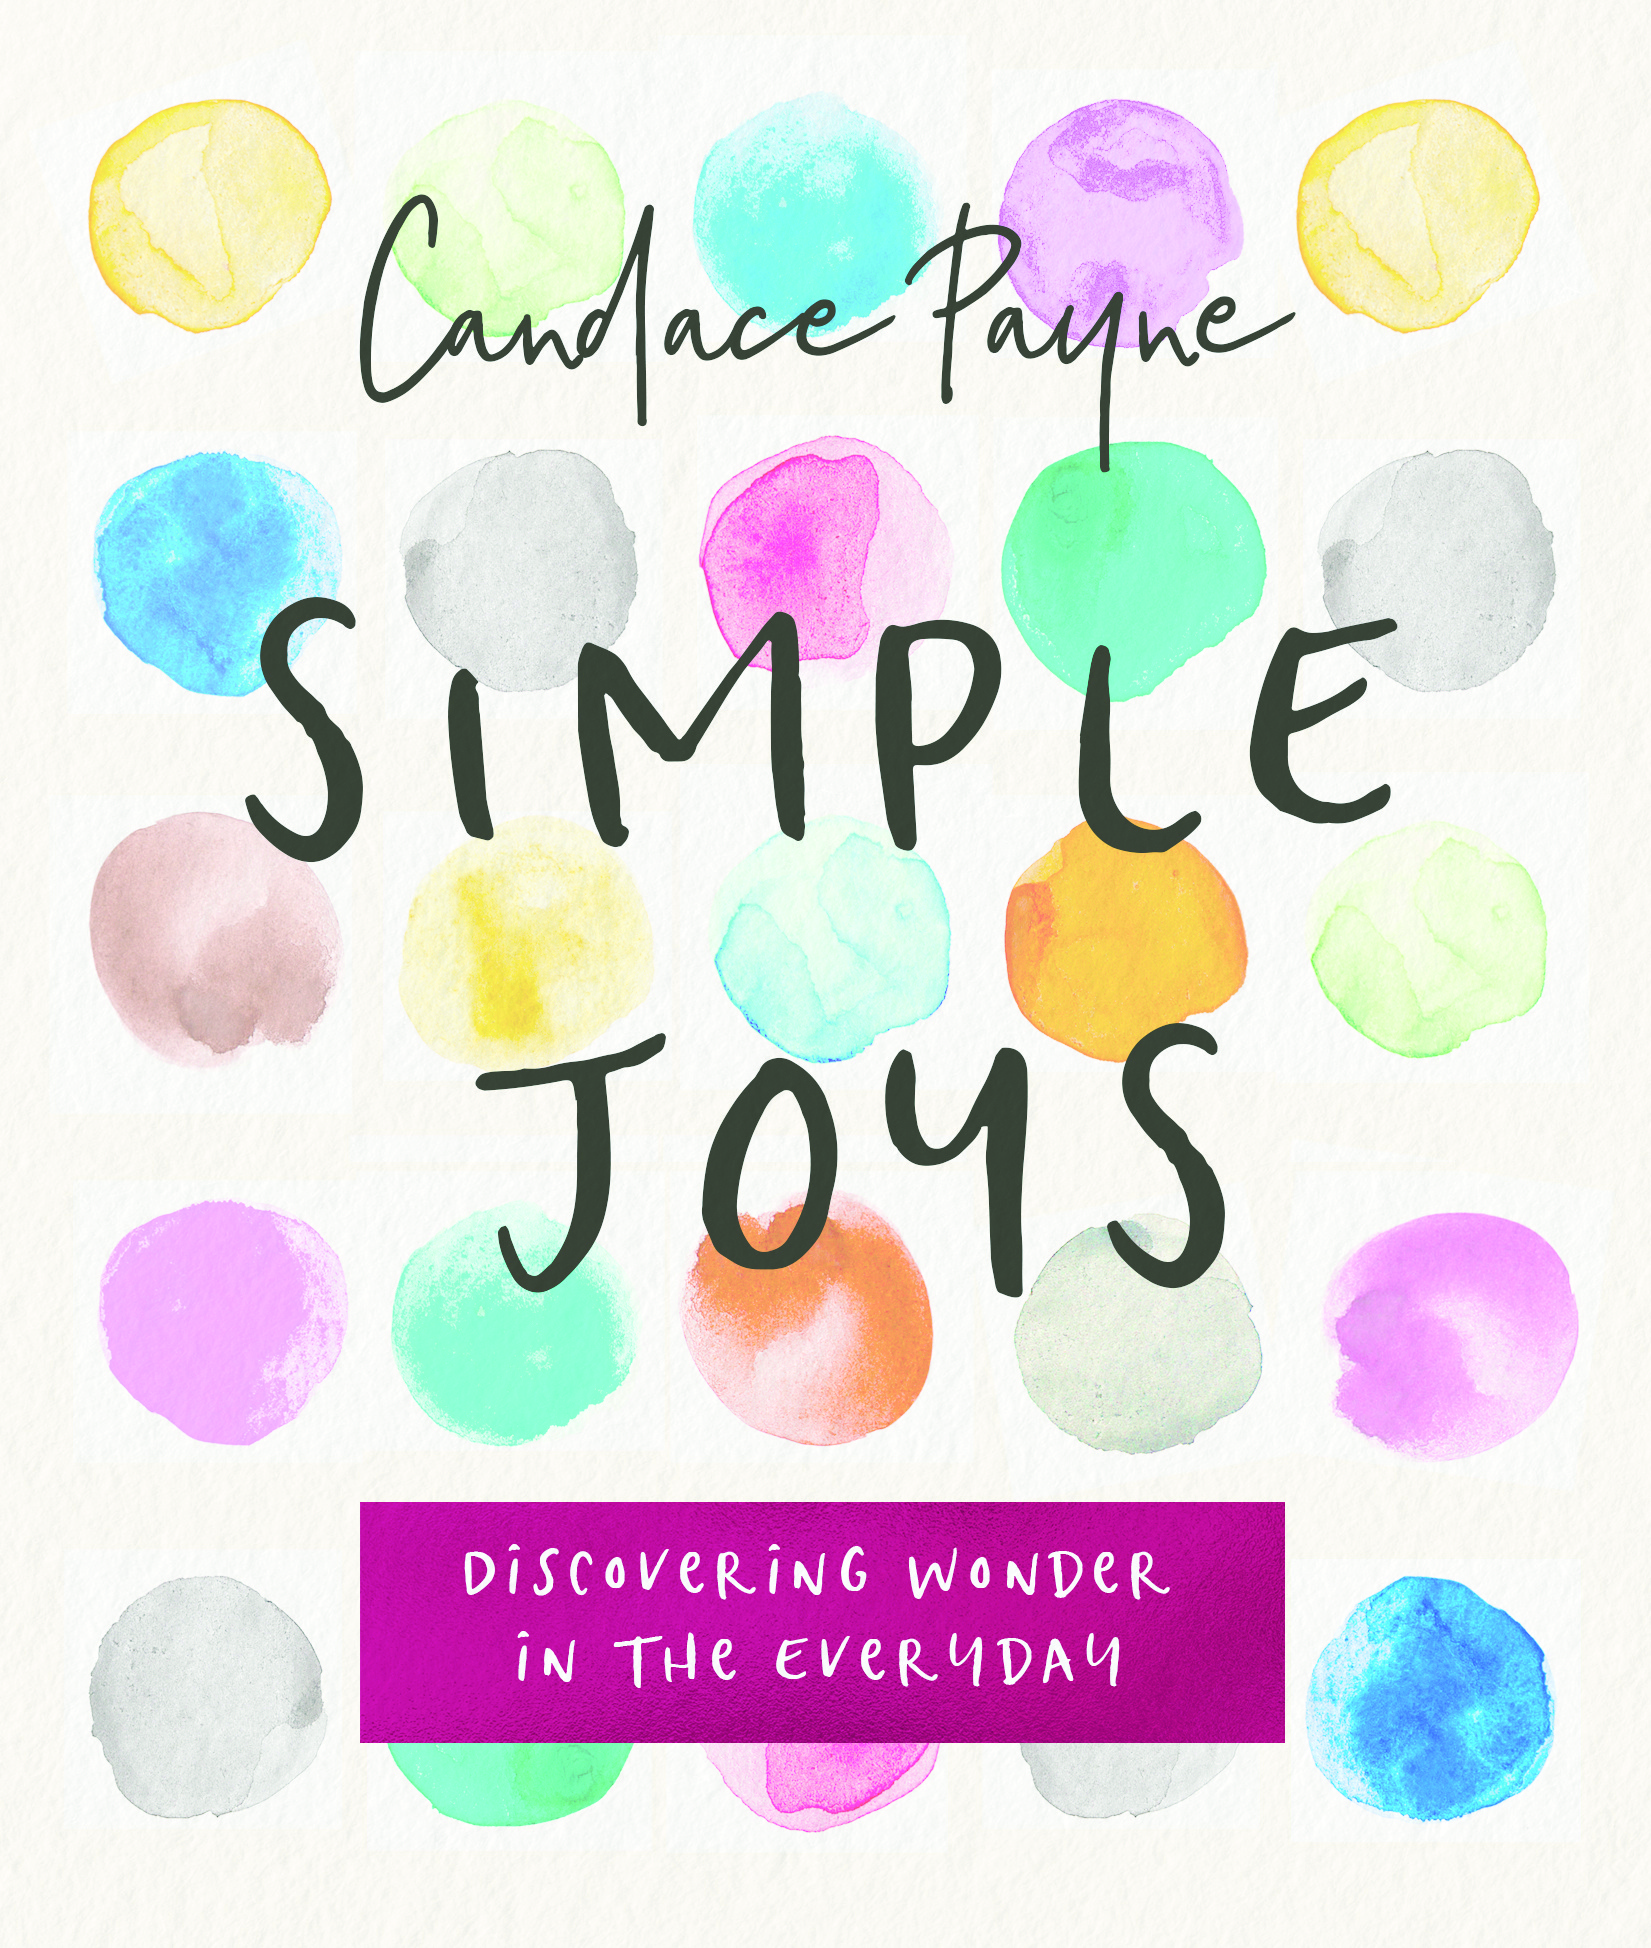 Candace Payne - Simple Joys book cover